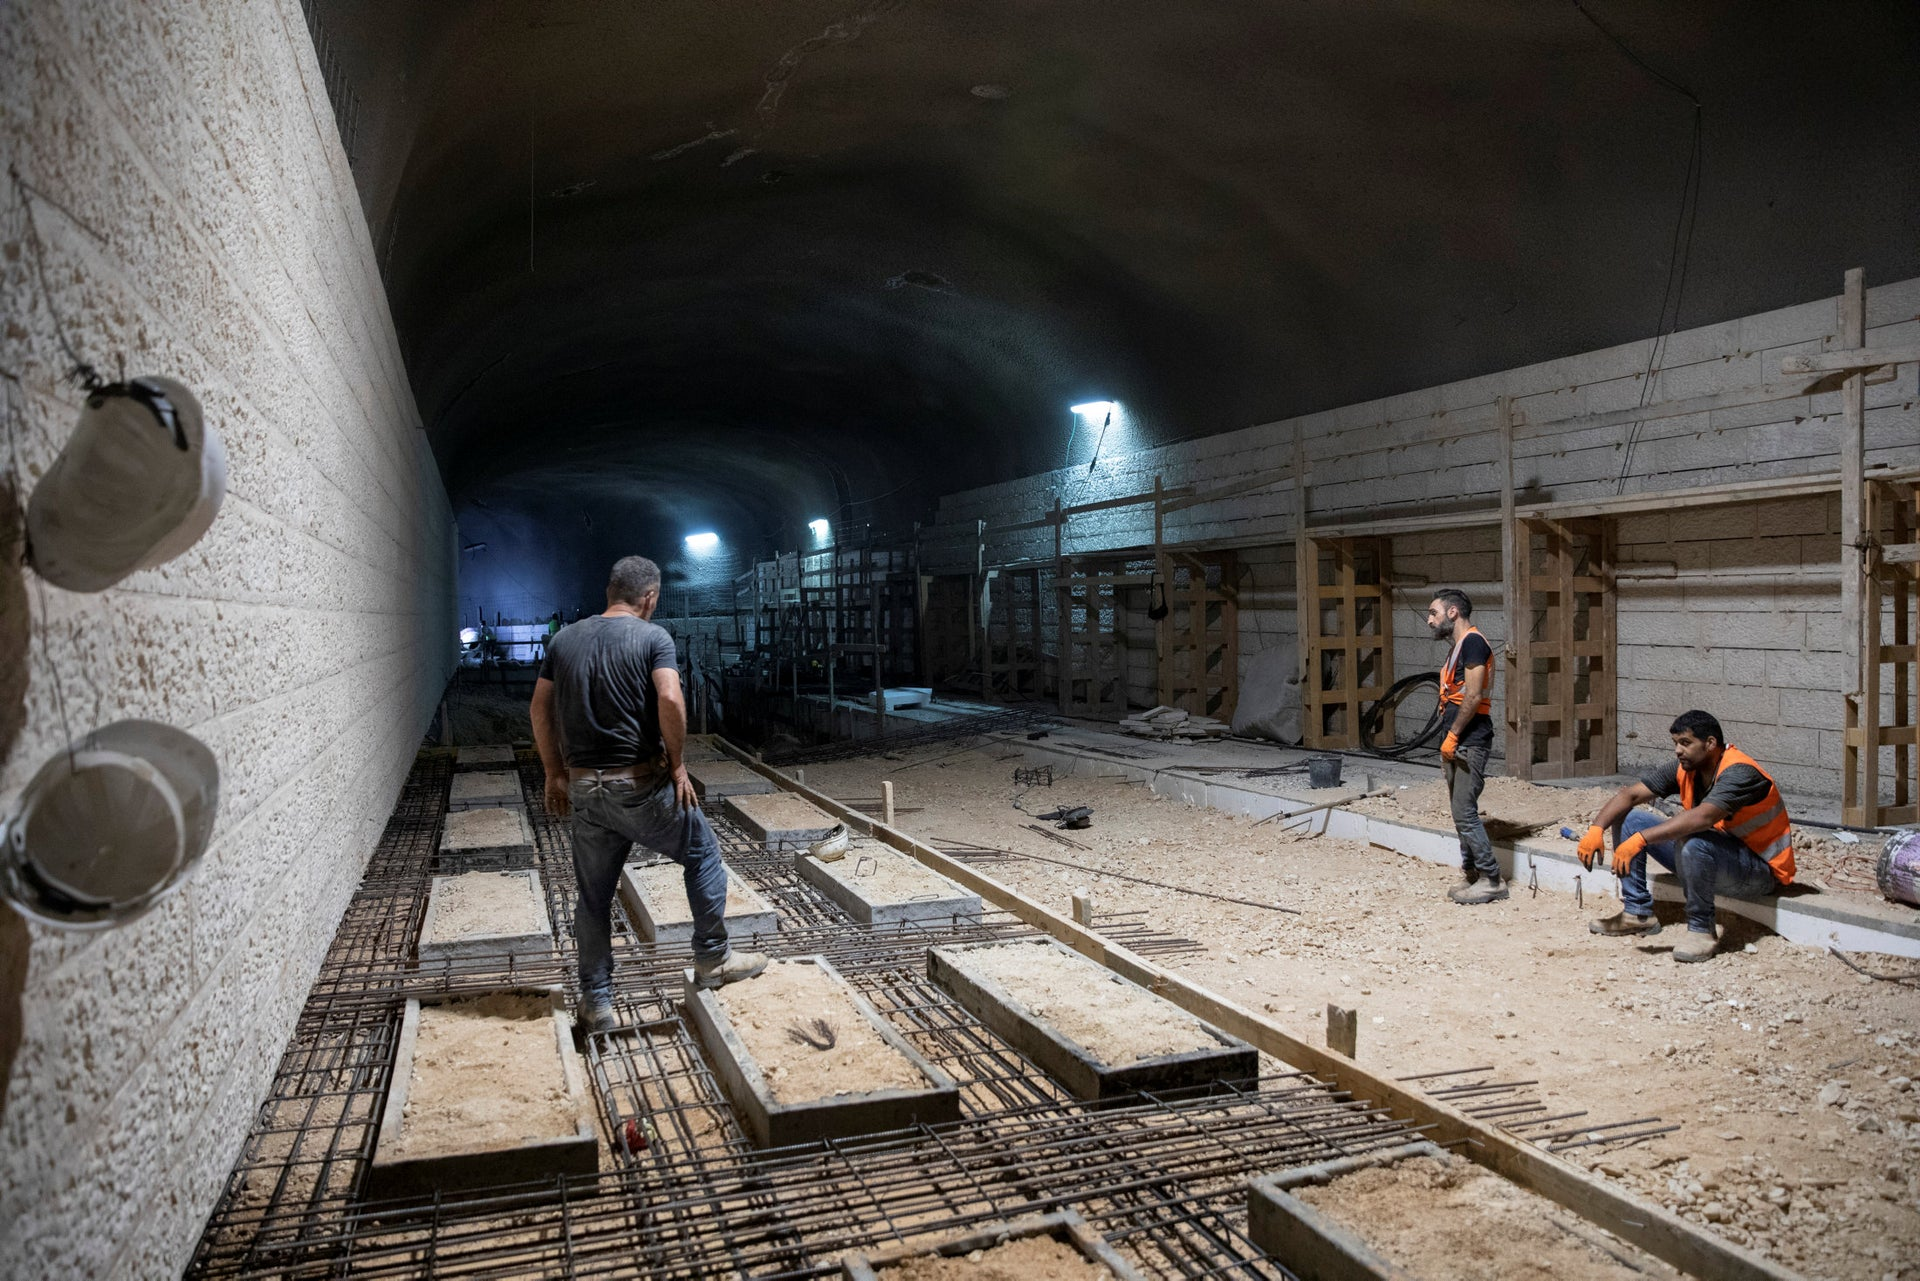 Construction workers at work on the underground cemetery being built at Jerusalem's Har Mamenuchot.